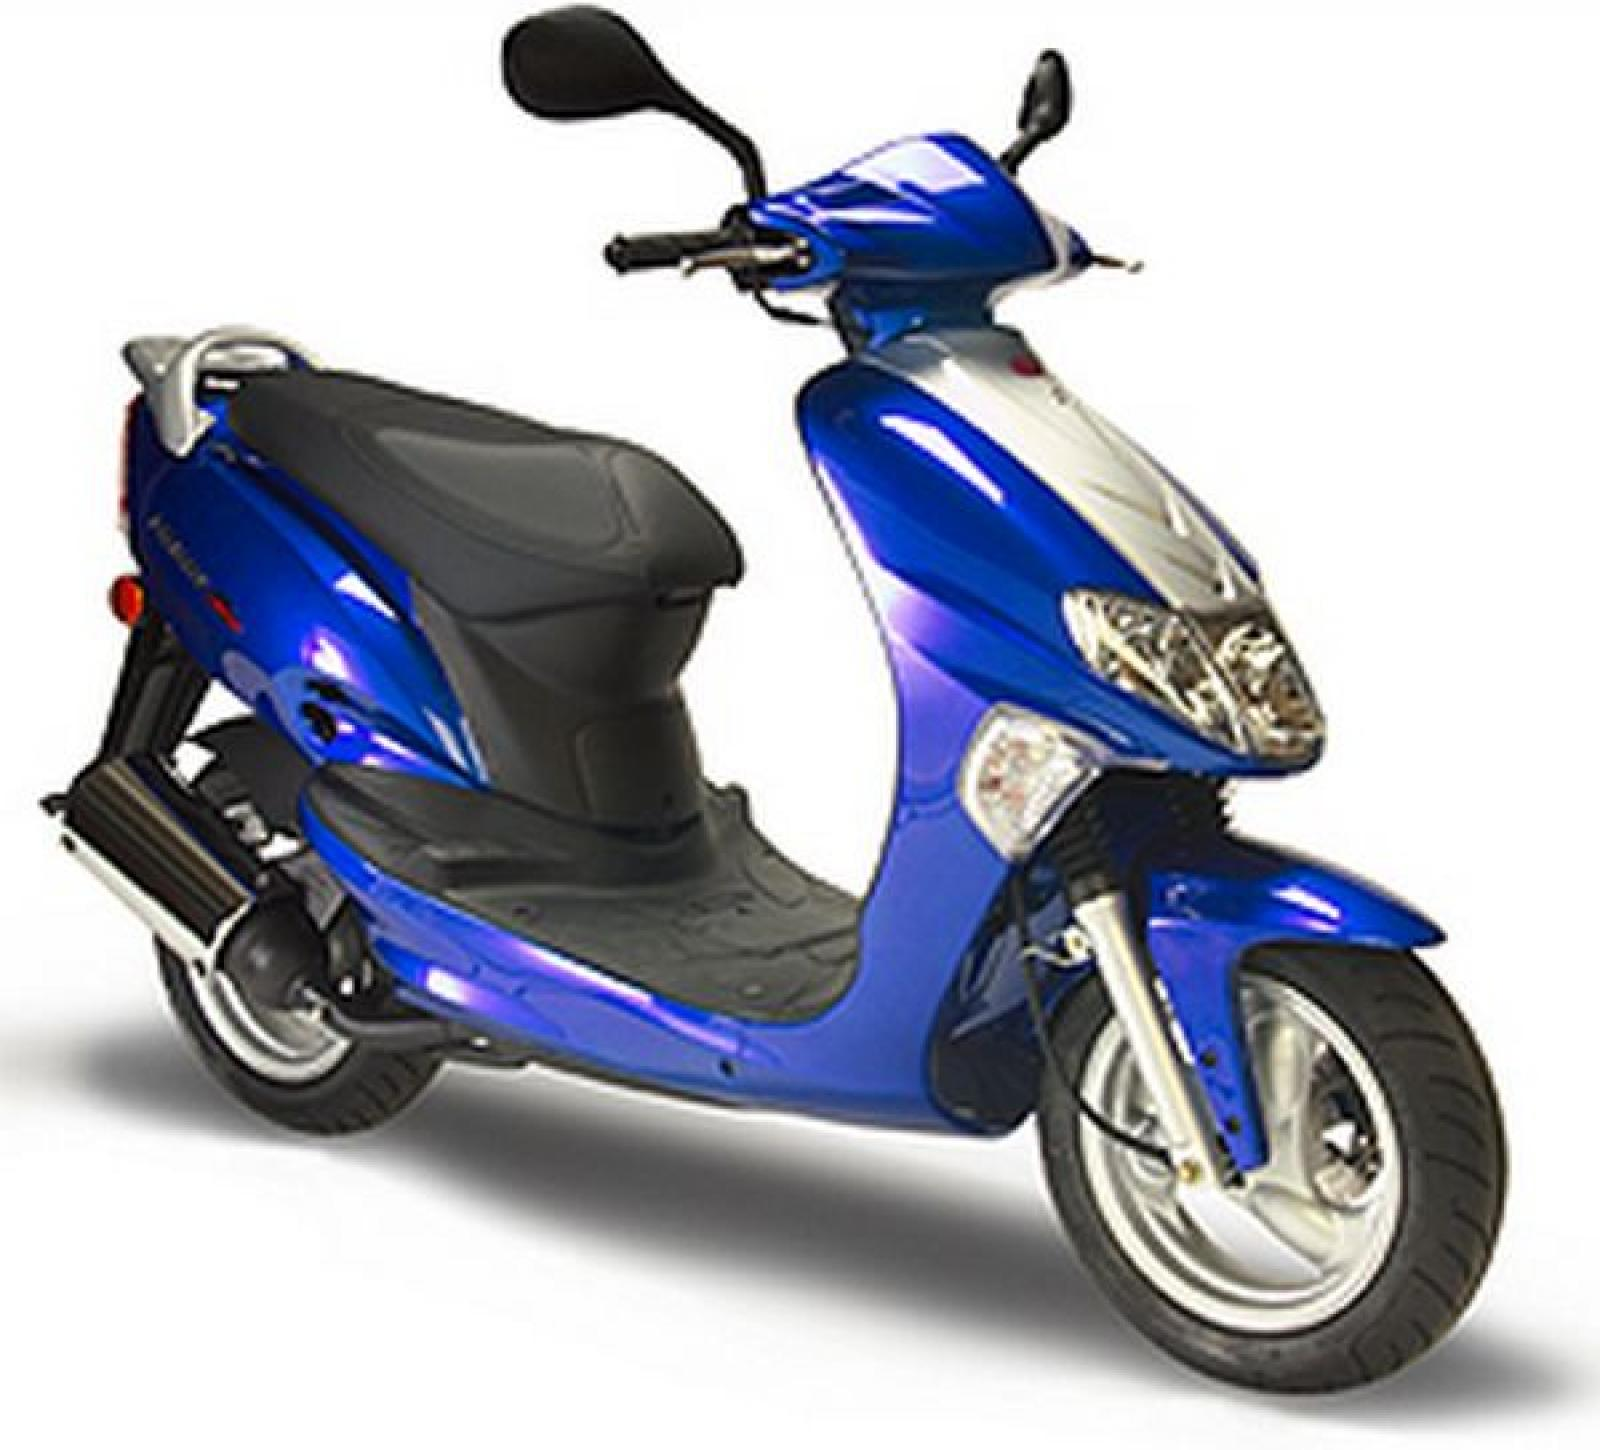 Kymco Vitality 50 2005 images #101894